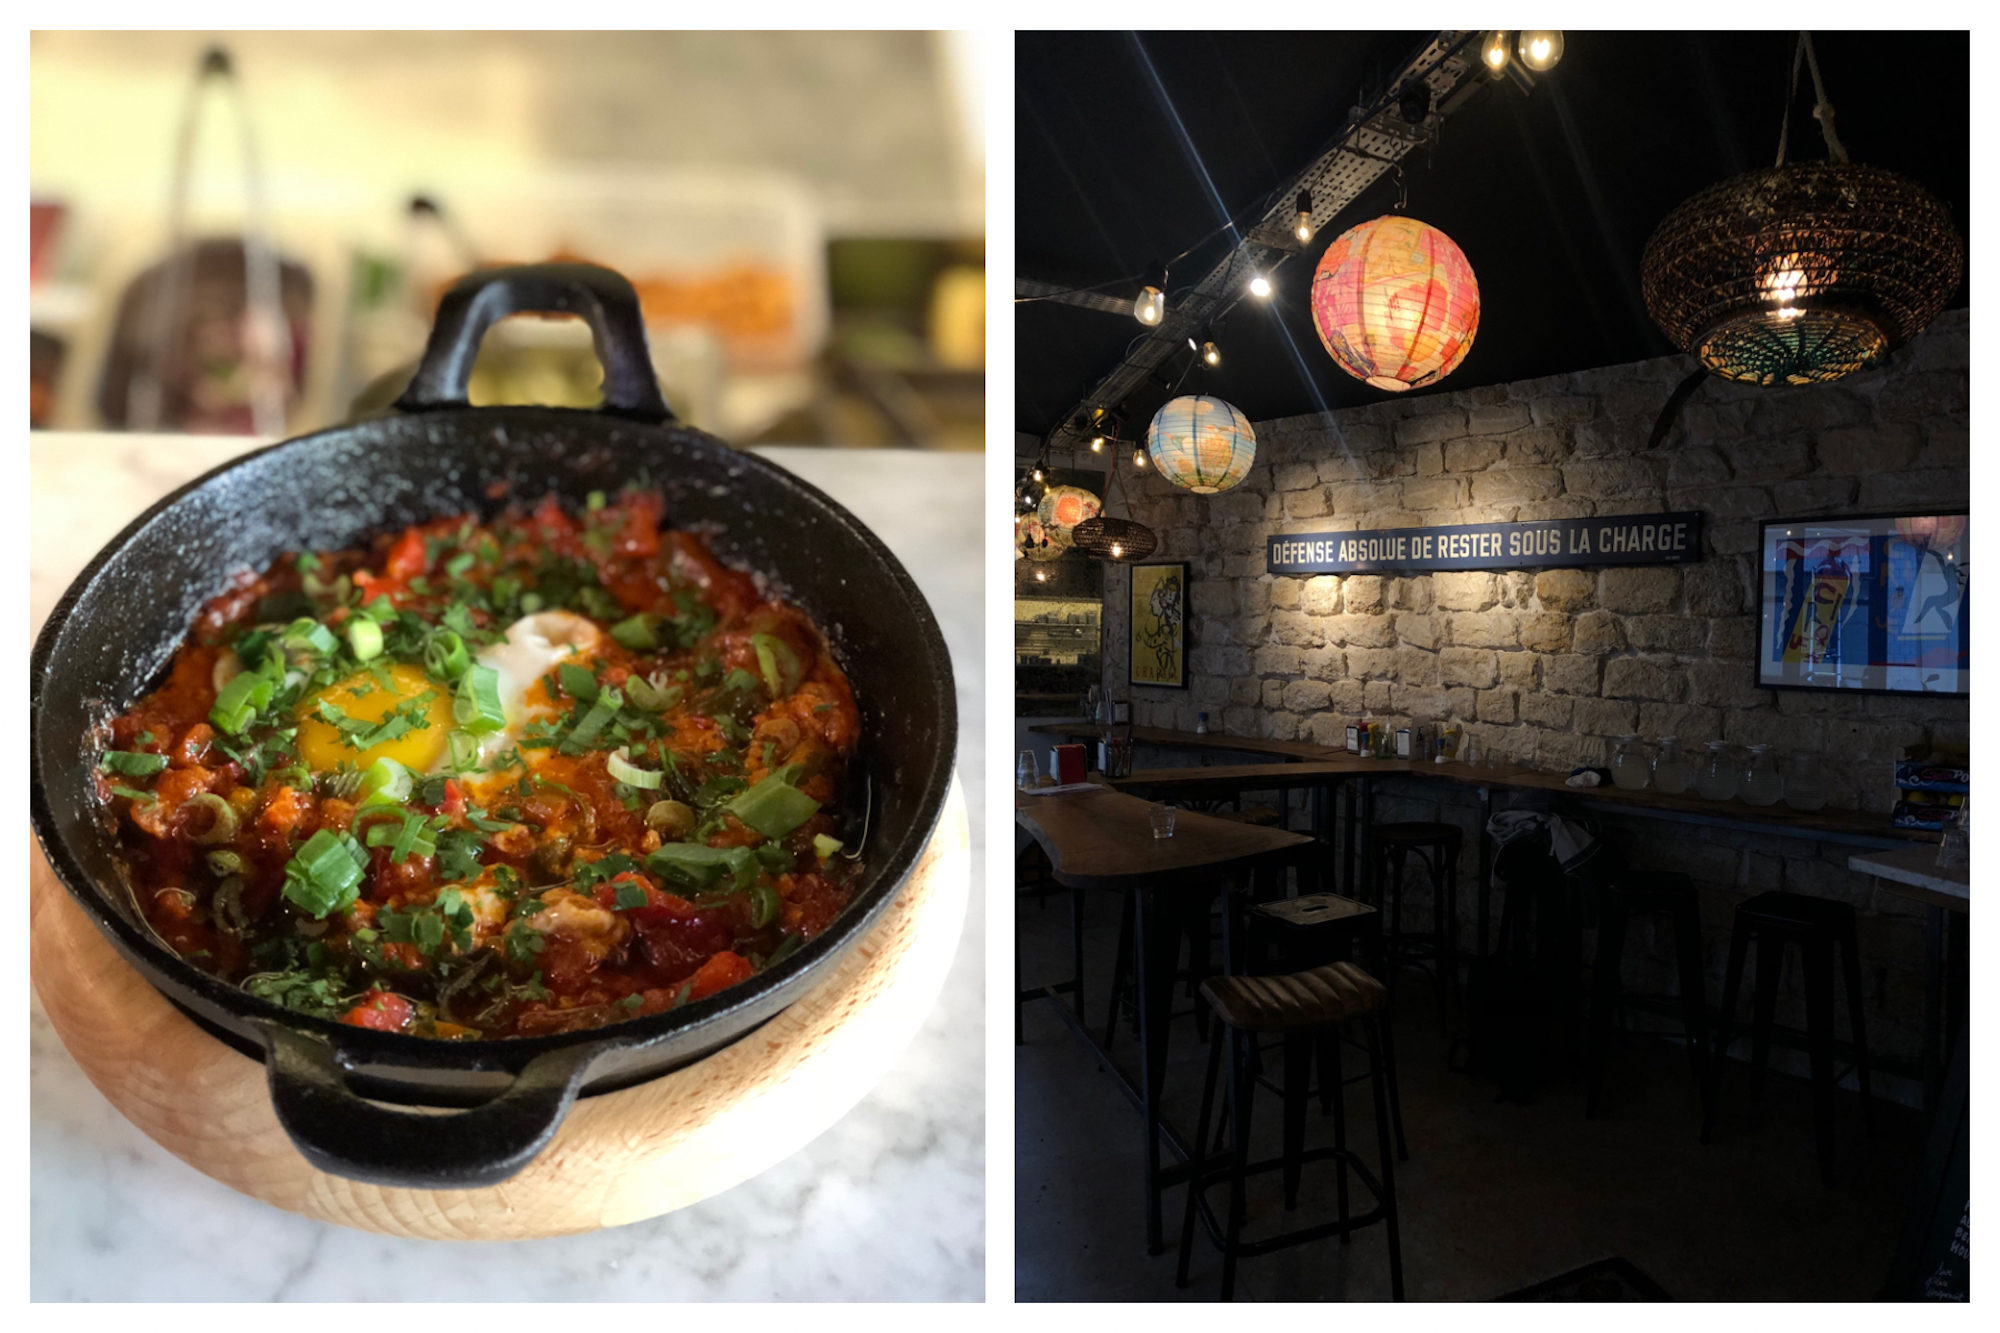 For great Israeli food in Paris' South Pigalle area, go to Saul's restaurant, which serves delicious shakshuka (left), has cozy interiors with low lighting and exposed stone walls (right) and has great views of the Sacré Coeur in Montmartre.